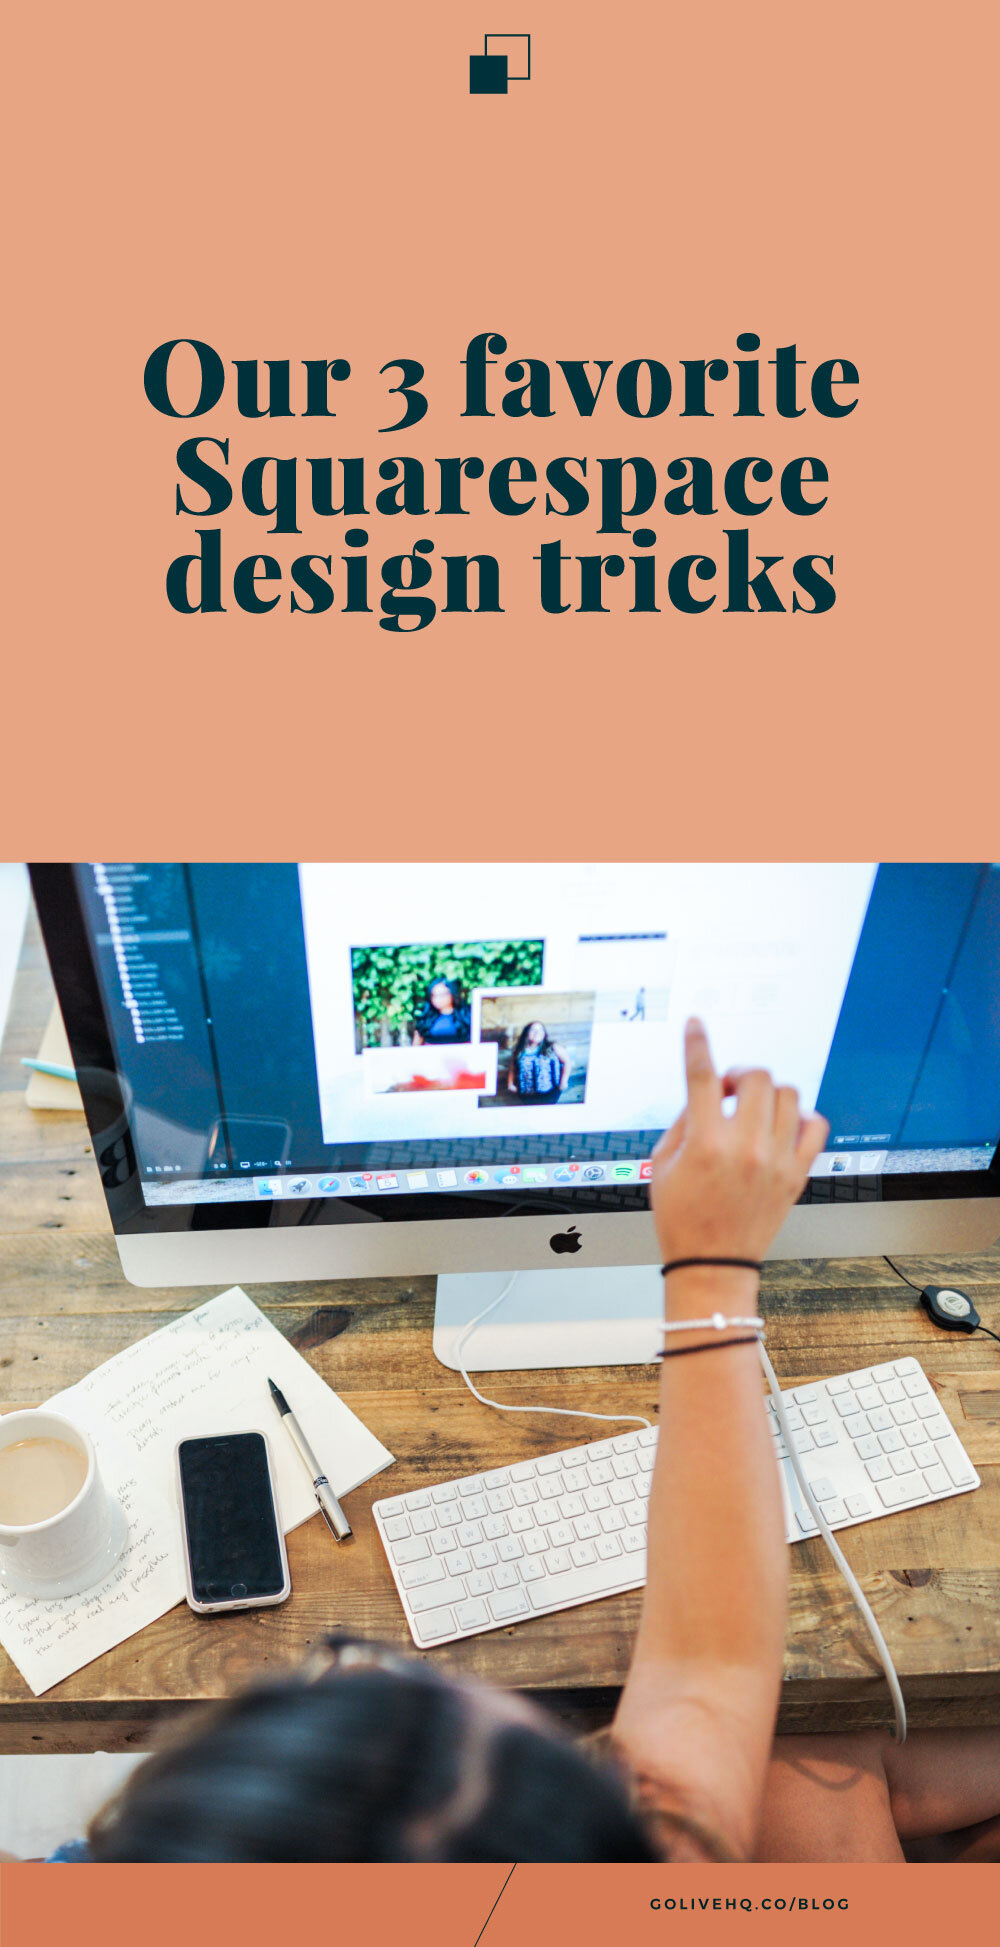 3+quick+tricks+for+creating+your+Squarespace+website+by+golivehq.jpg